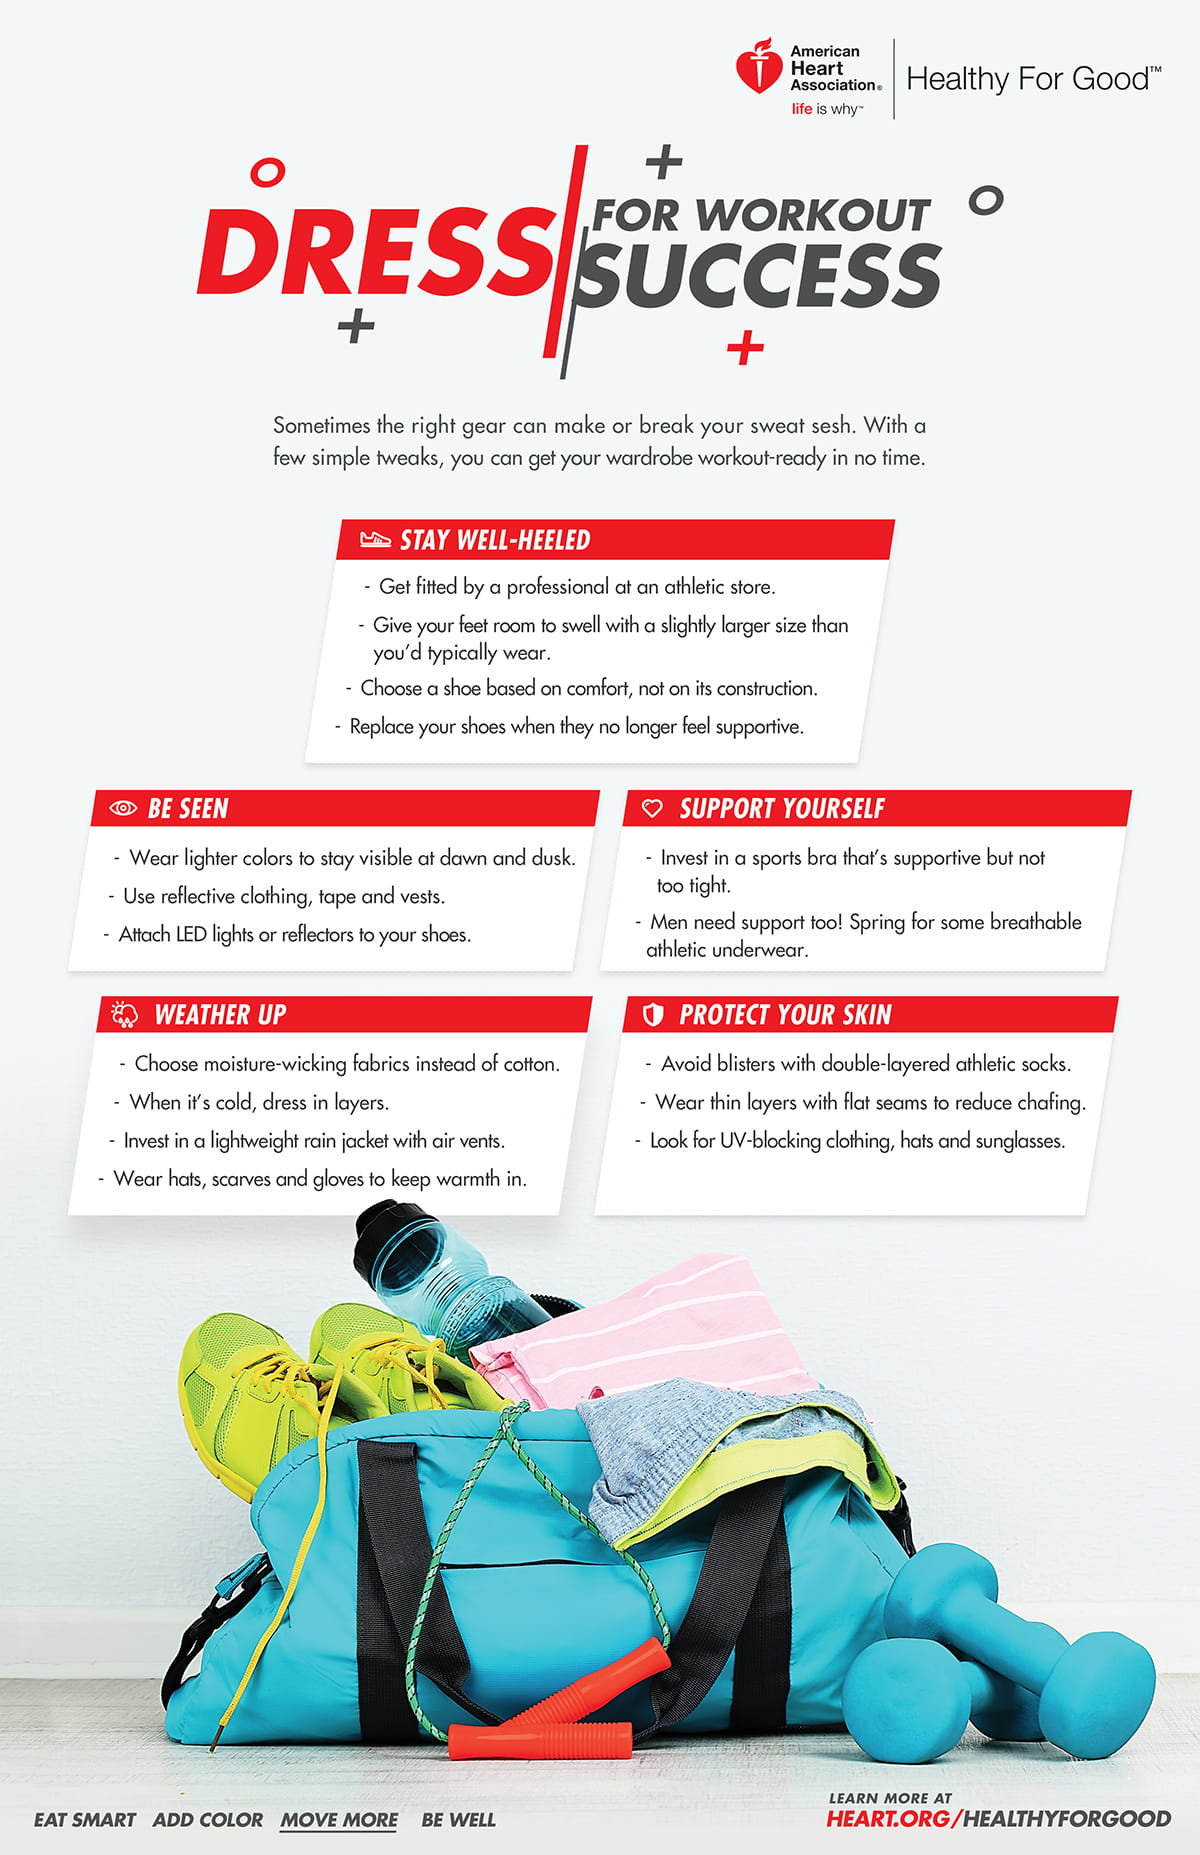 Dress for workout success infographic